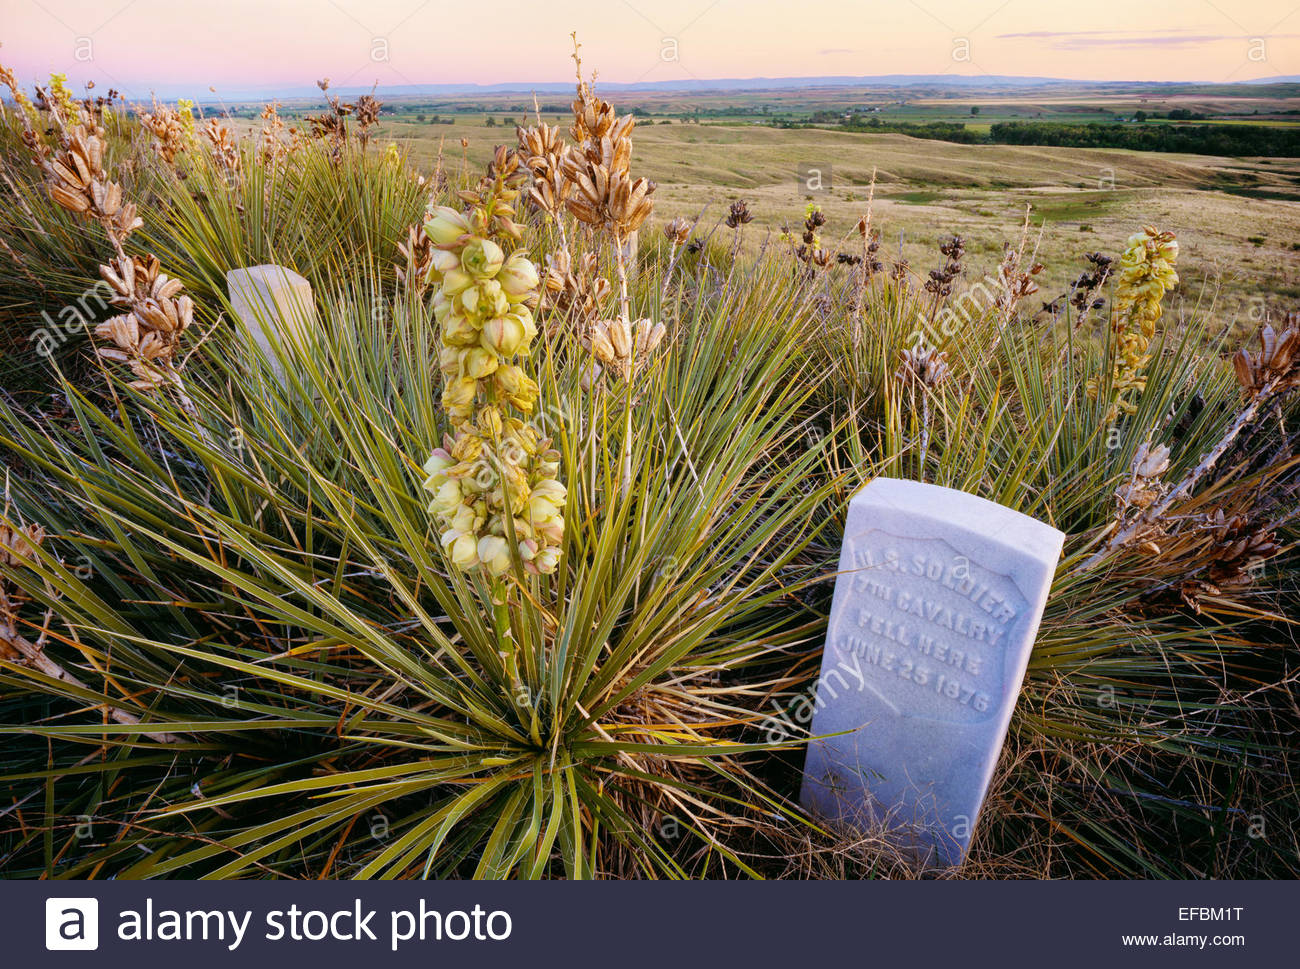 Memorial marker for unnamed U.S. soldier, Little Bighorn Battlefield National Monument, Montana. - Stock Image